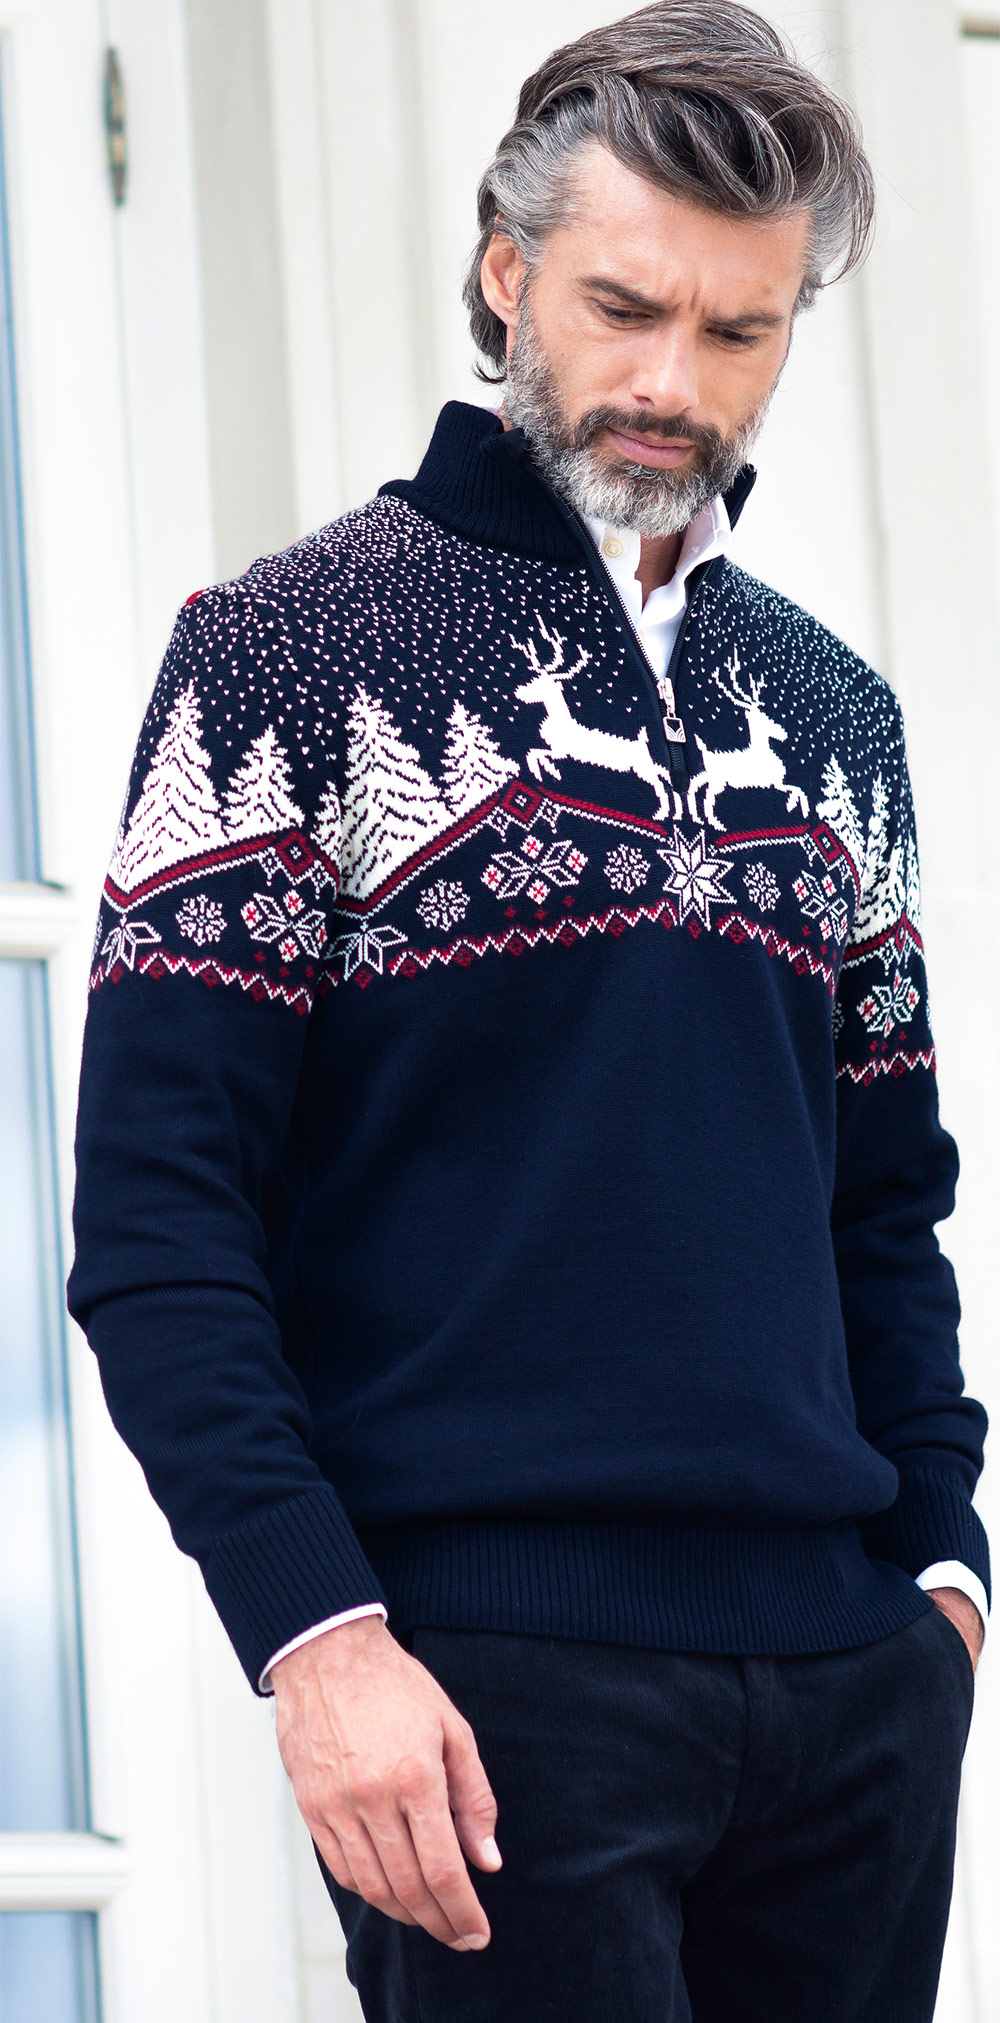 Sweater christmas sweater - Discount 0%